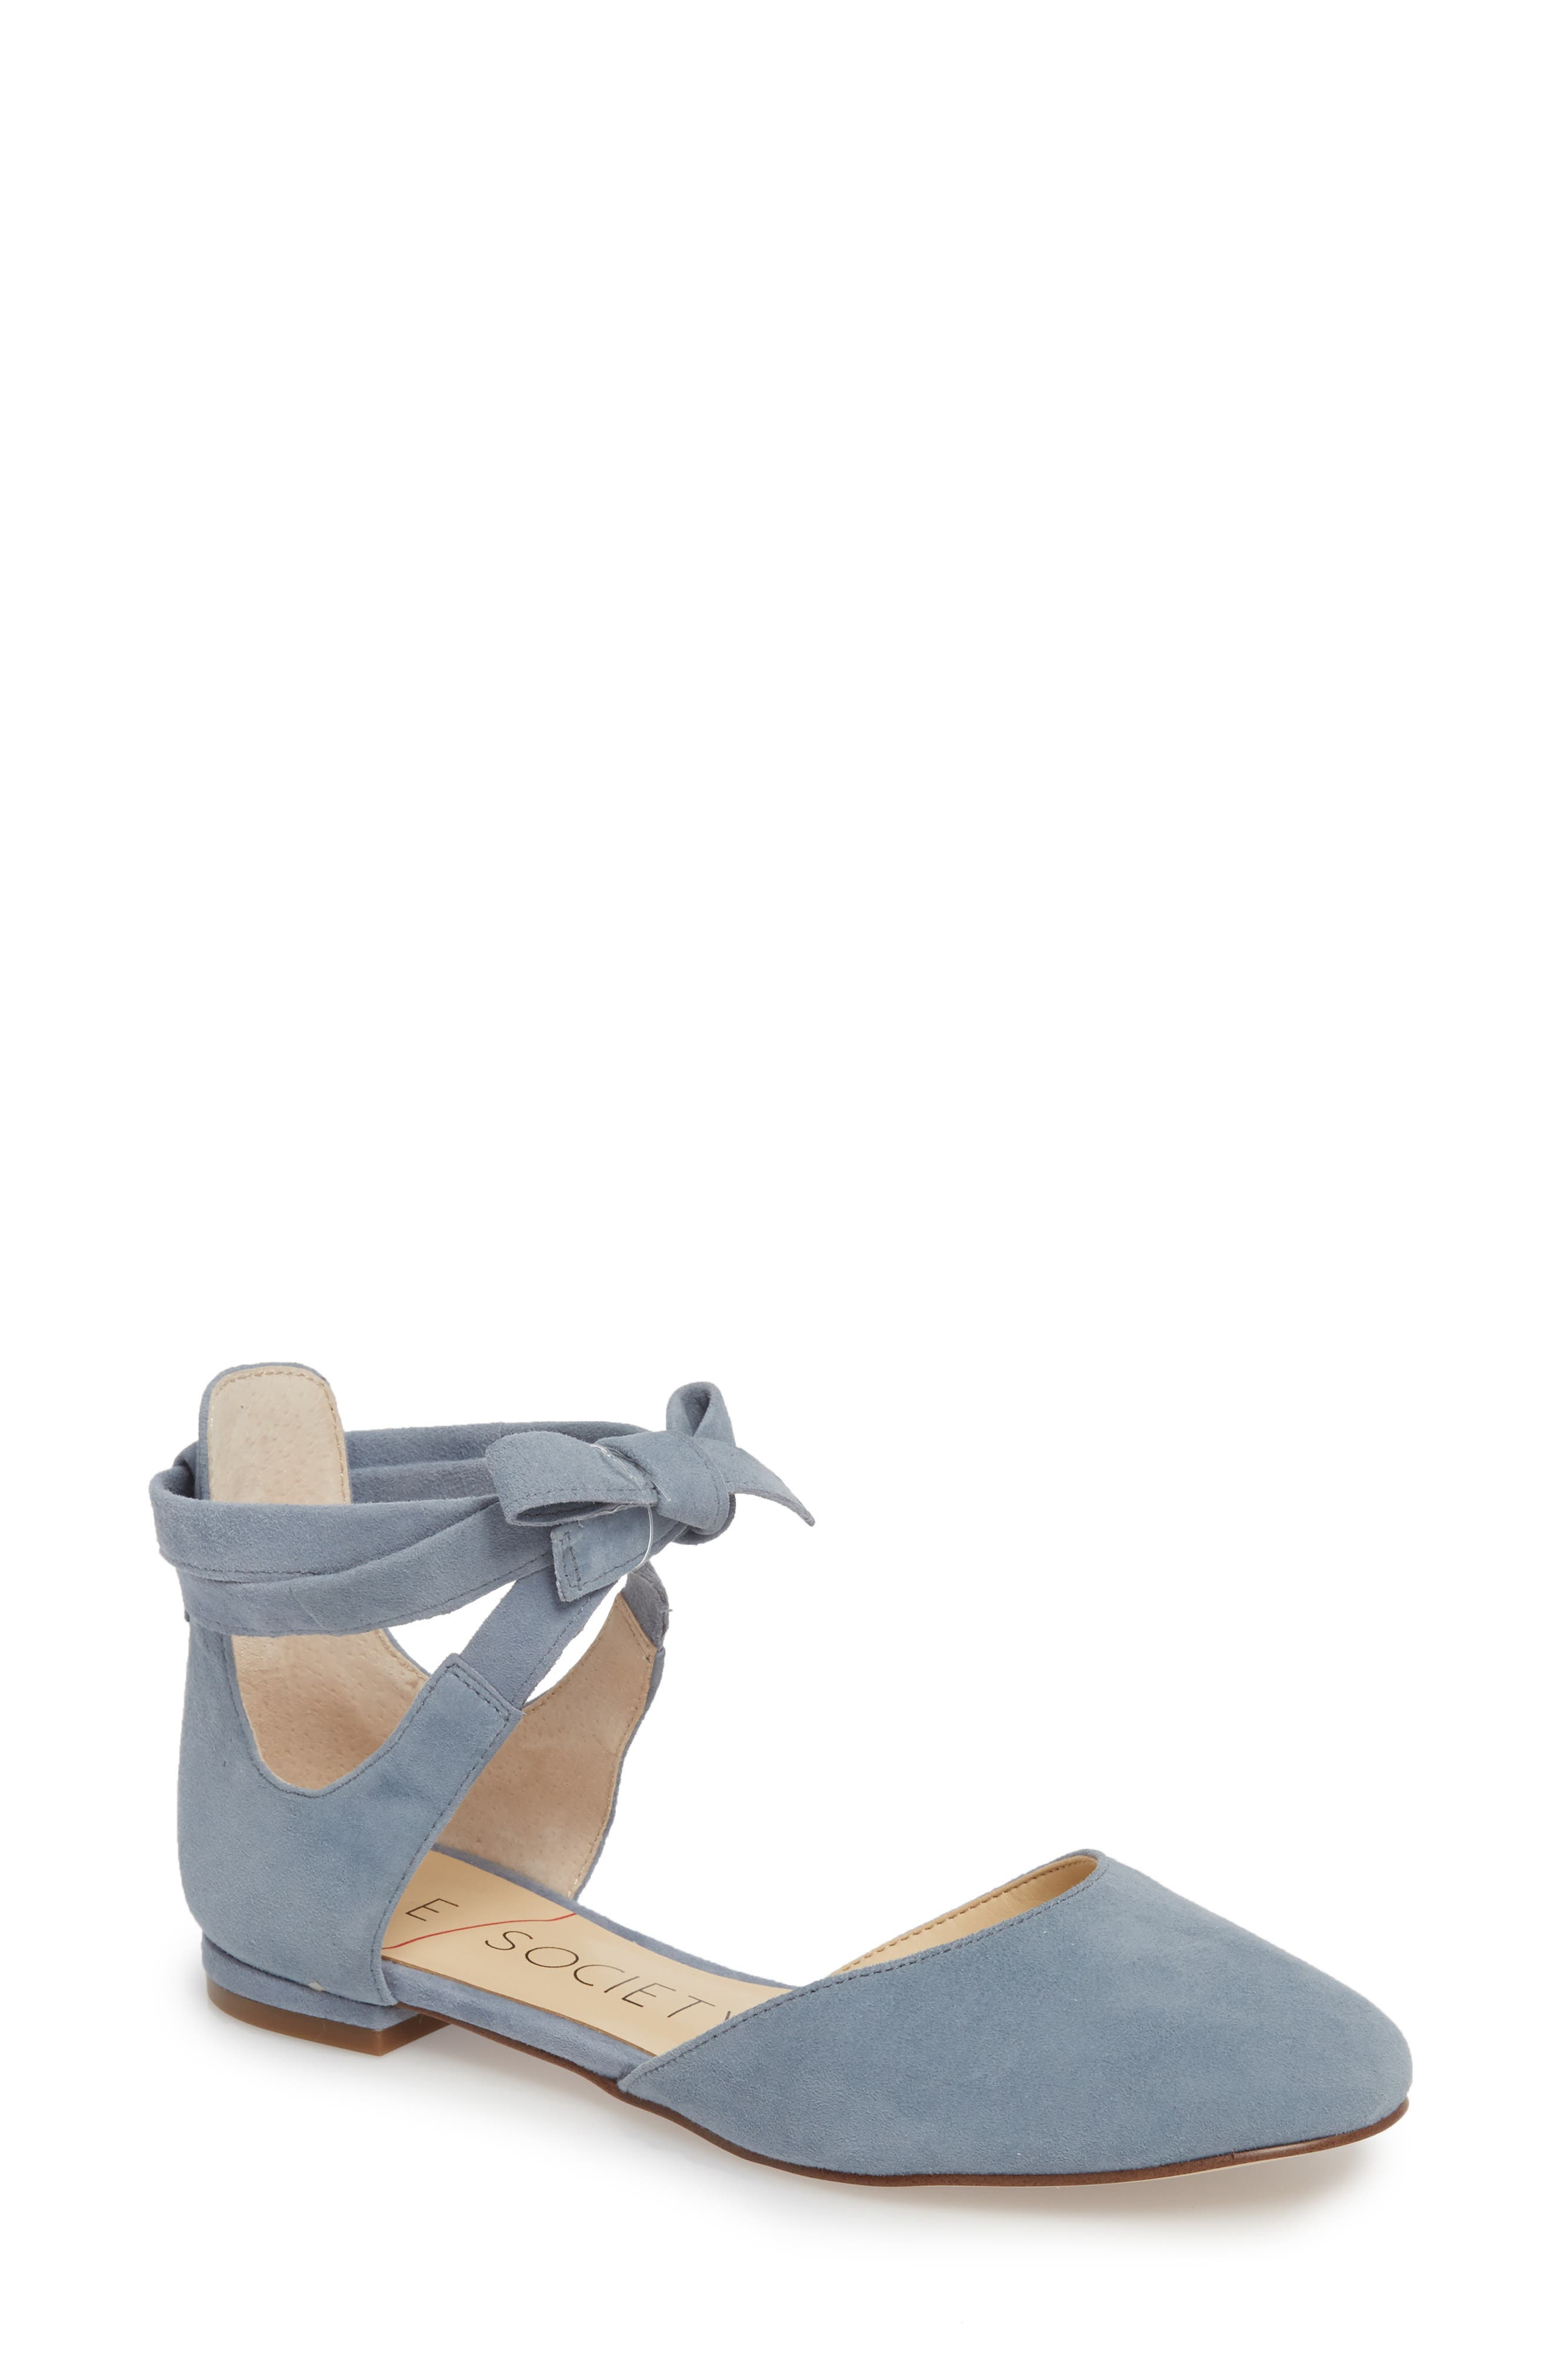 Sole Society Pauly Ankle Wrap Flat, Blue